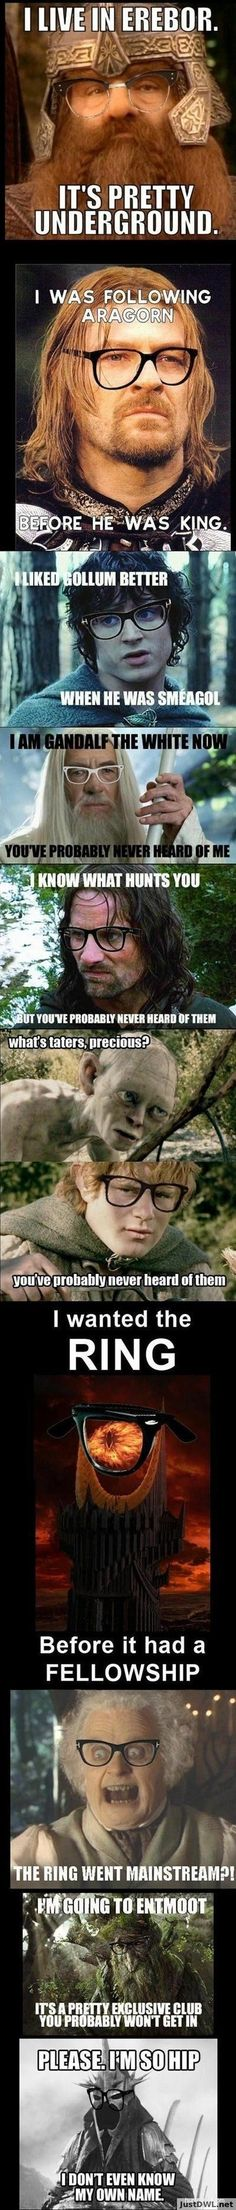 Hipster LOTR. Oh my gosh this was too funny and I am a nerd. Lord of the rings never not funny